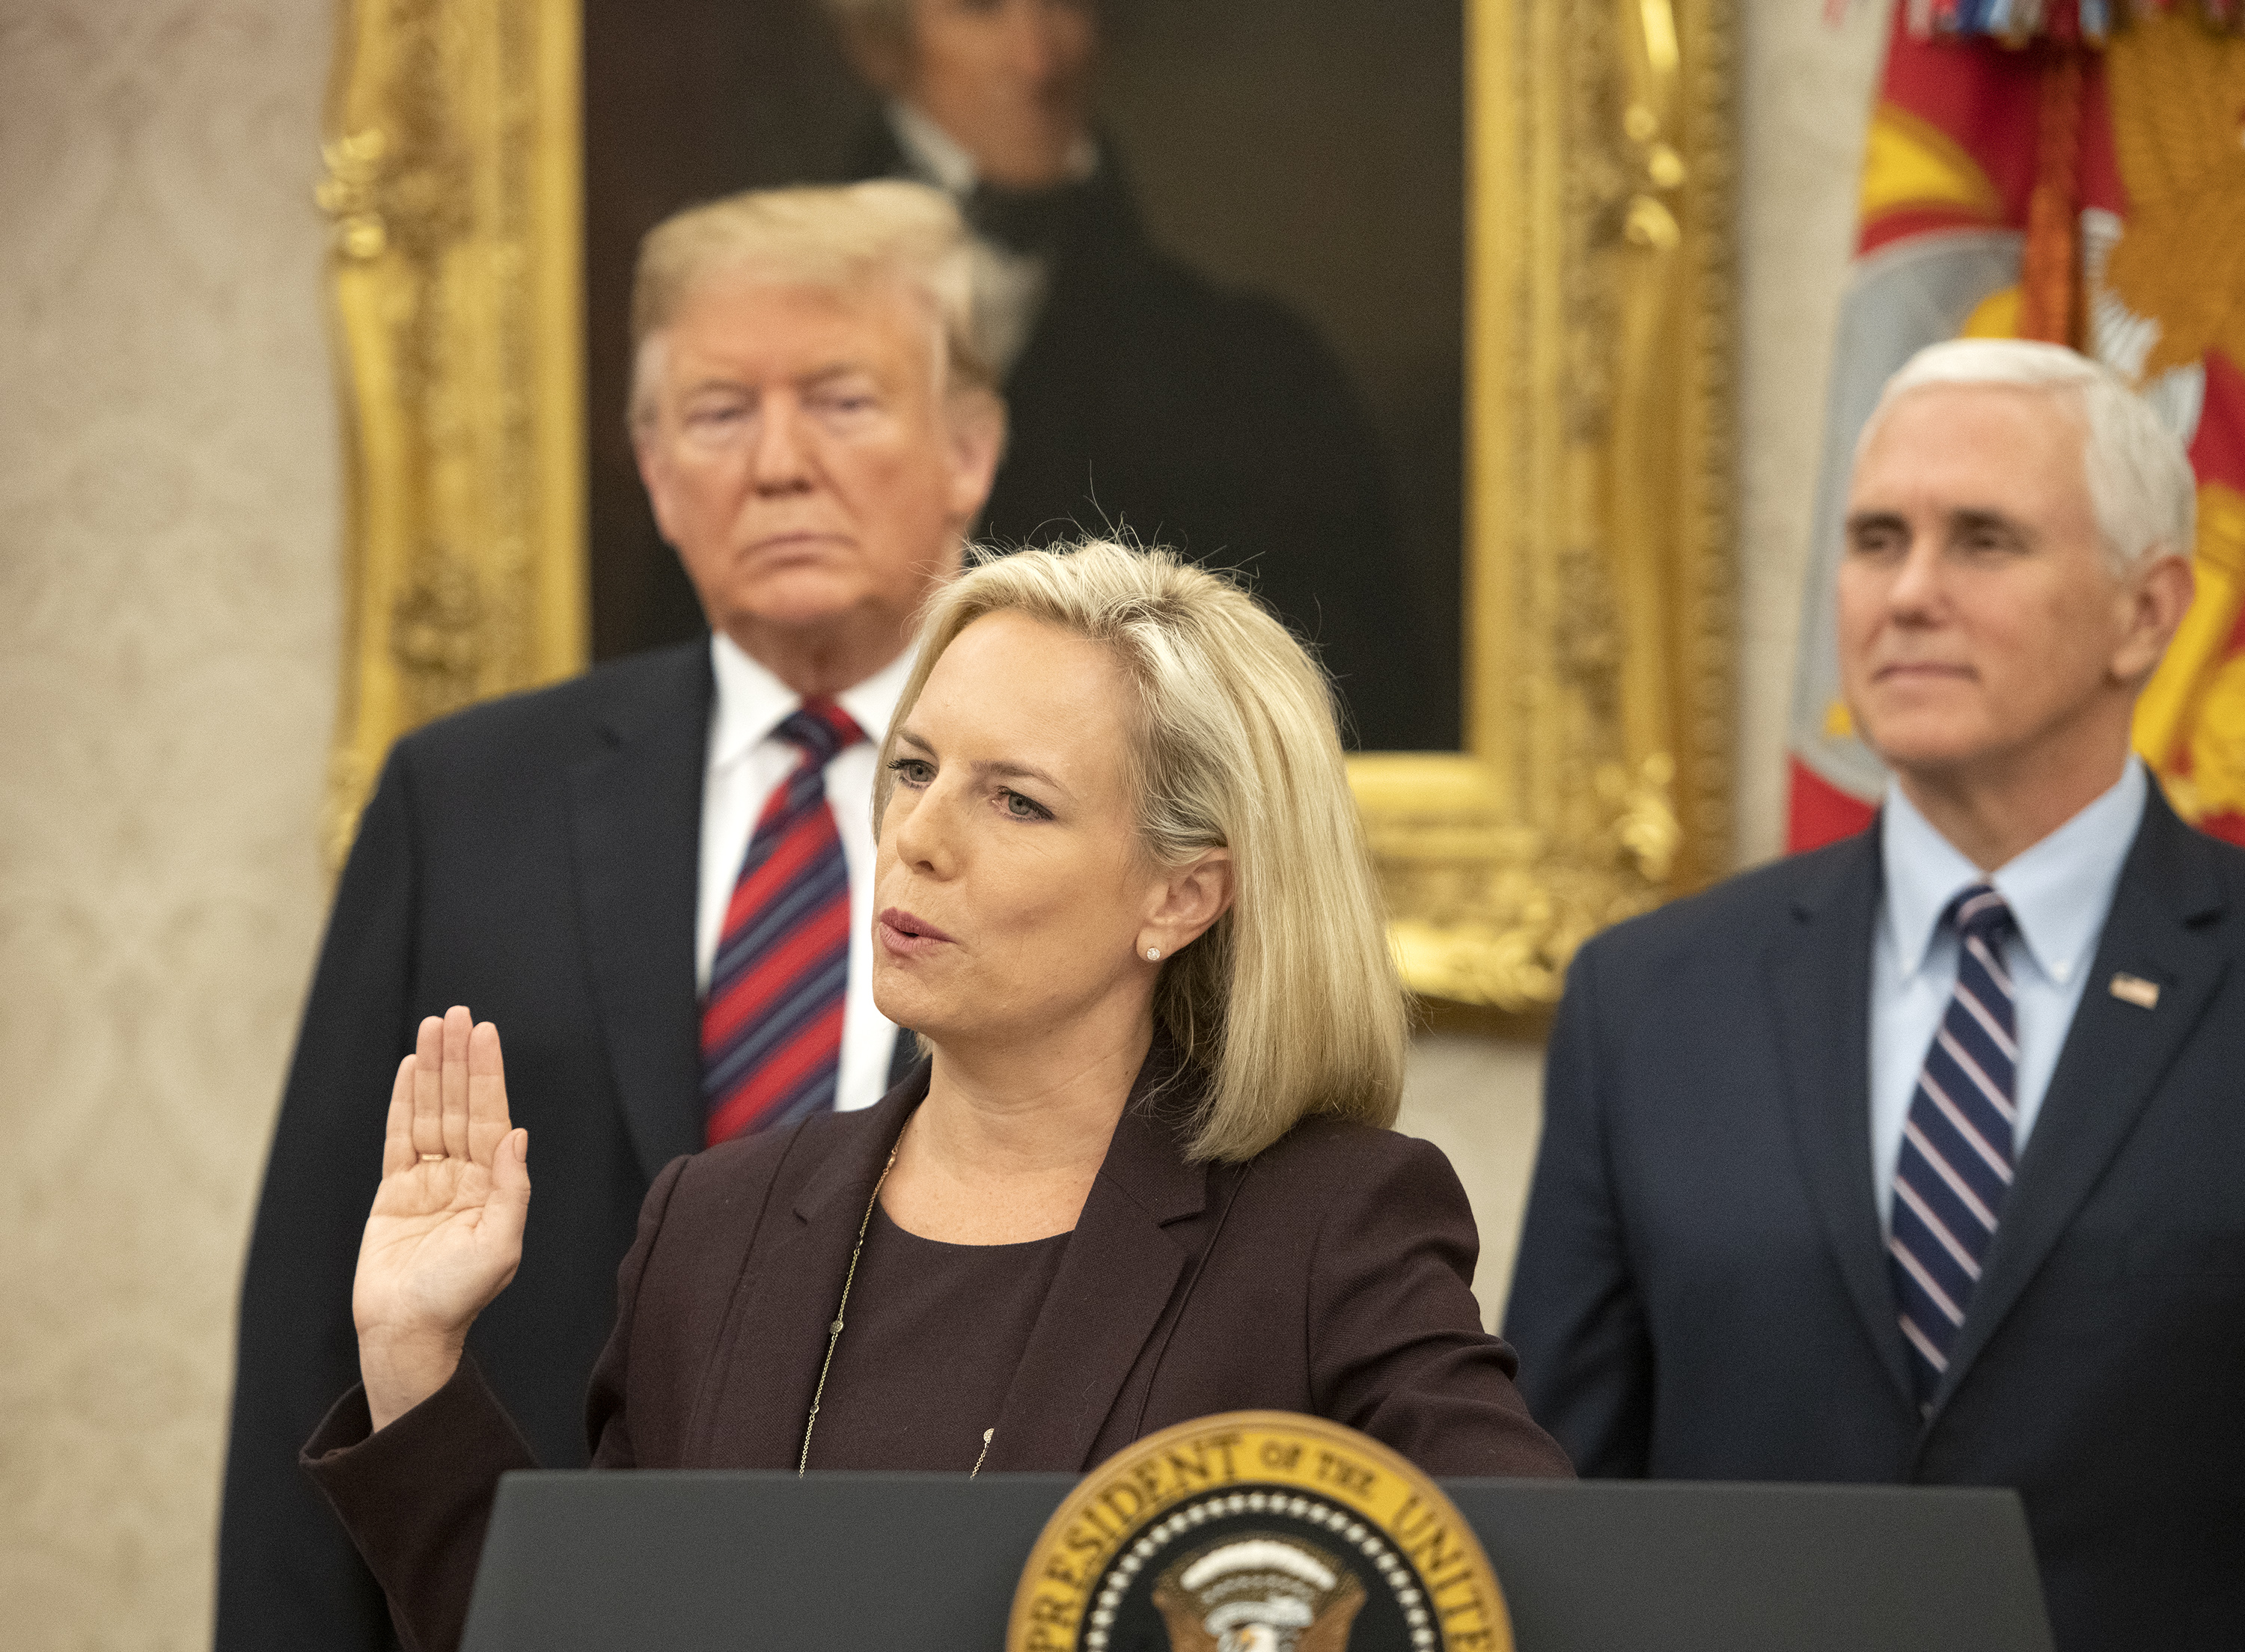 WASHINGTON, DC - JANUARY 19: United States Secretary of Homeland Security (DHS) Kirstjen Nielsen, center, administers the oath of citizenship to five people as U.S. President Donald Trump, left, and Vice President Mike Pence, right look on during a naturalization ceremony in the Oval Office of the White House in Washington, DC on Saturday, January 19, 2019. (Photo by Ron Sachs-Pool/Getty Images)